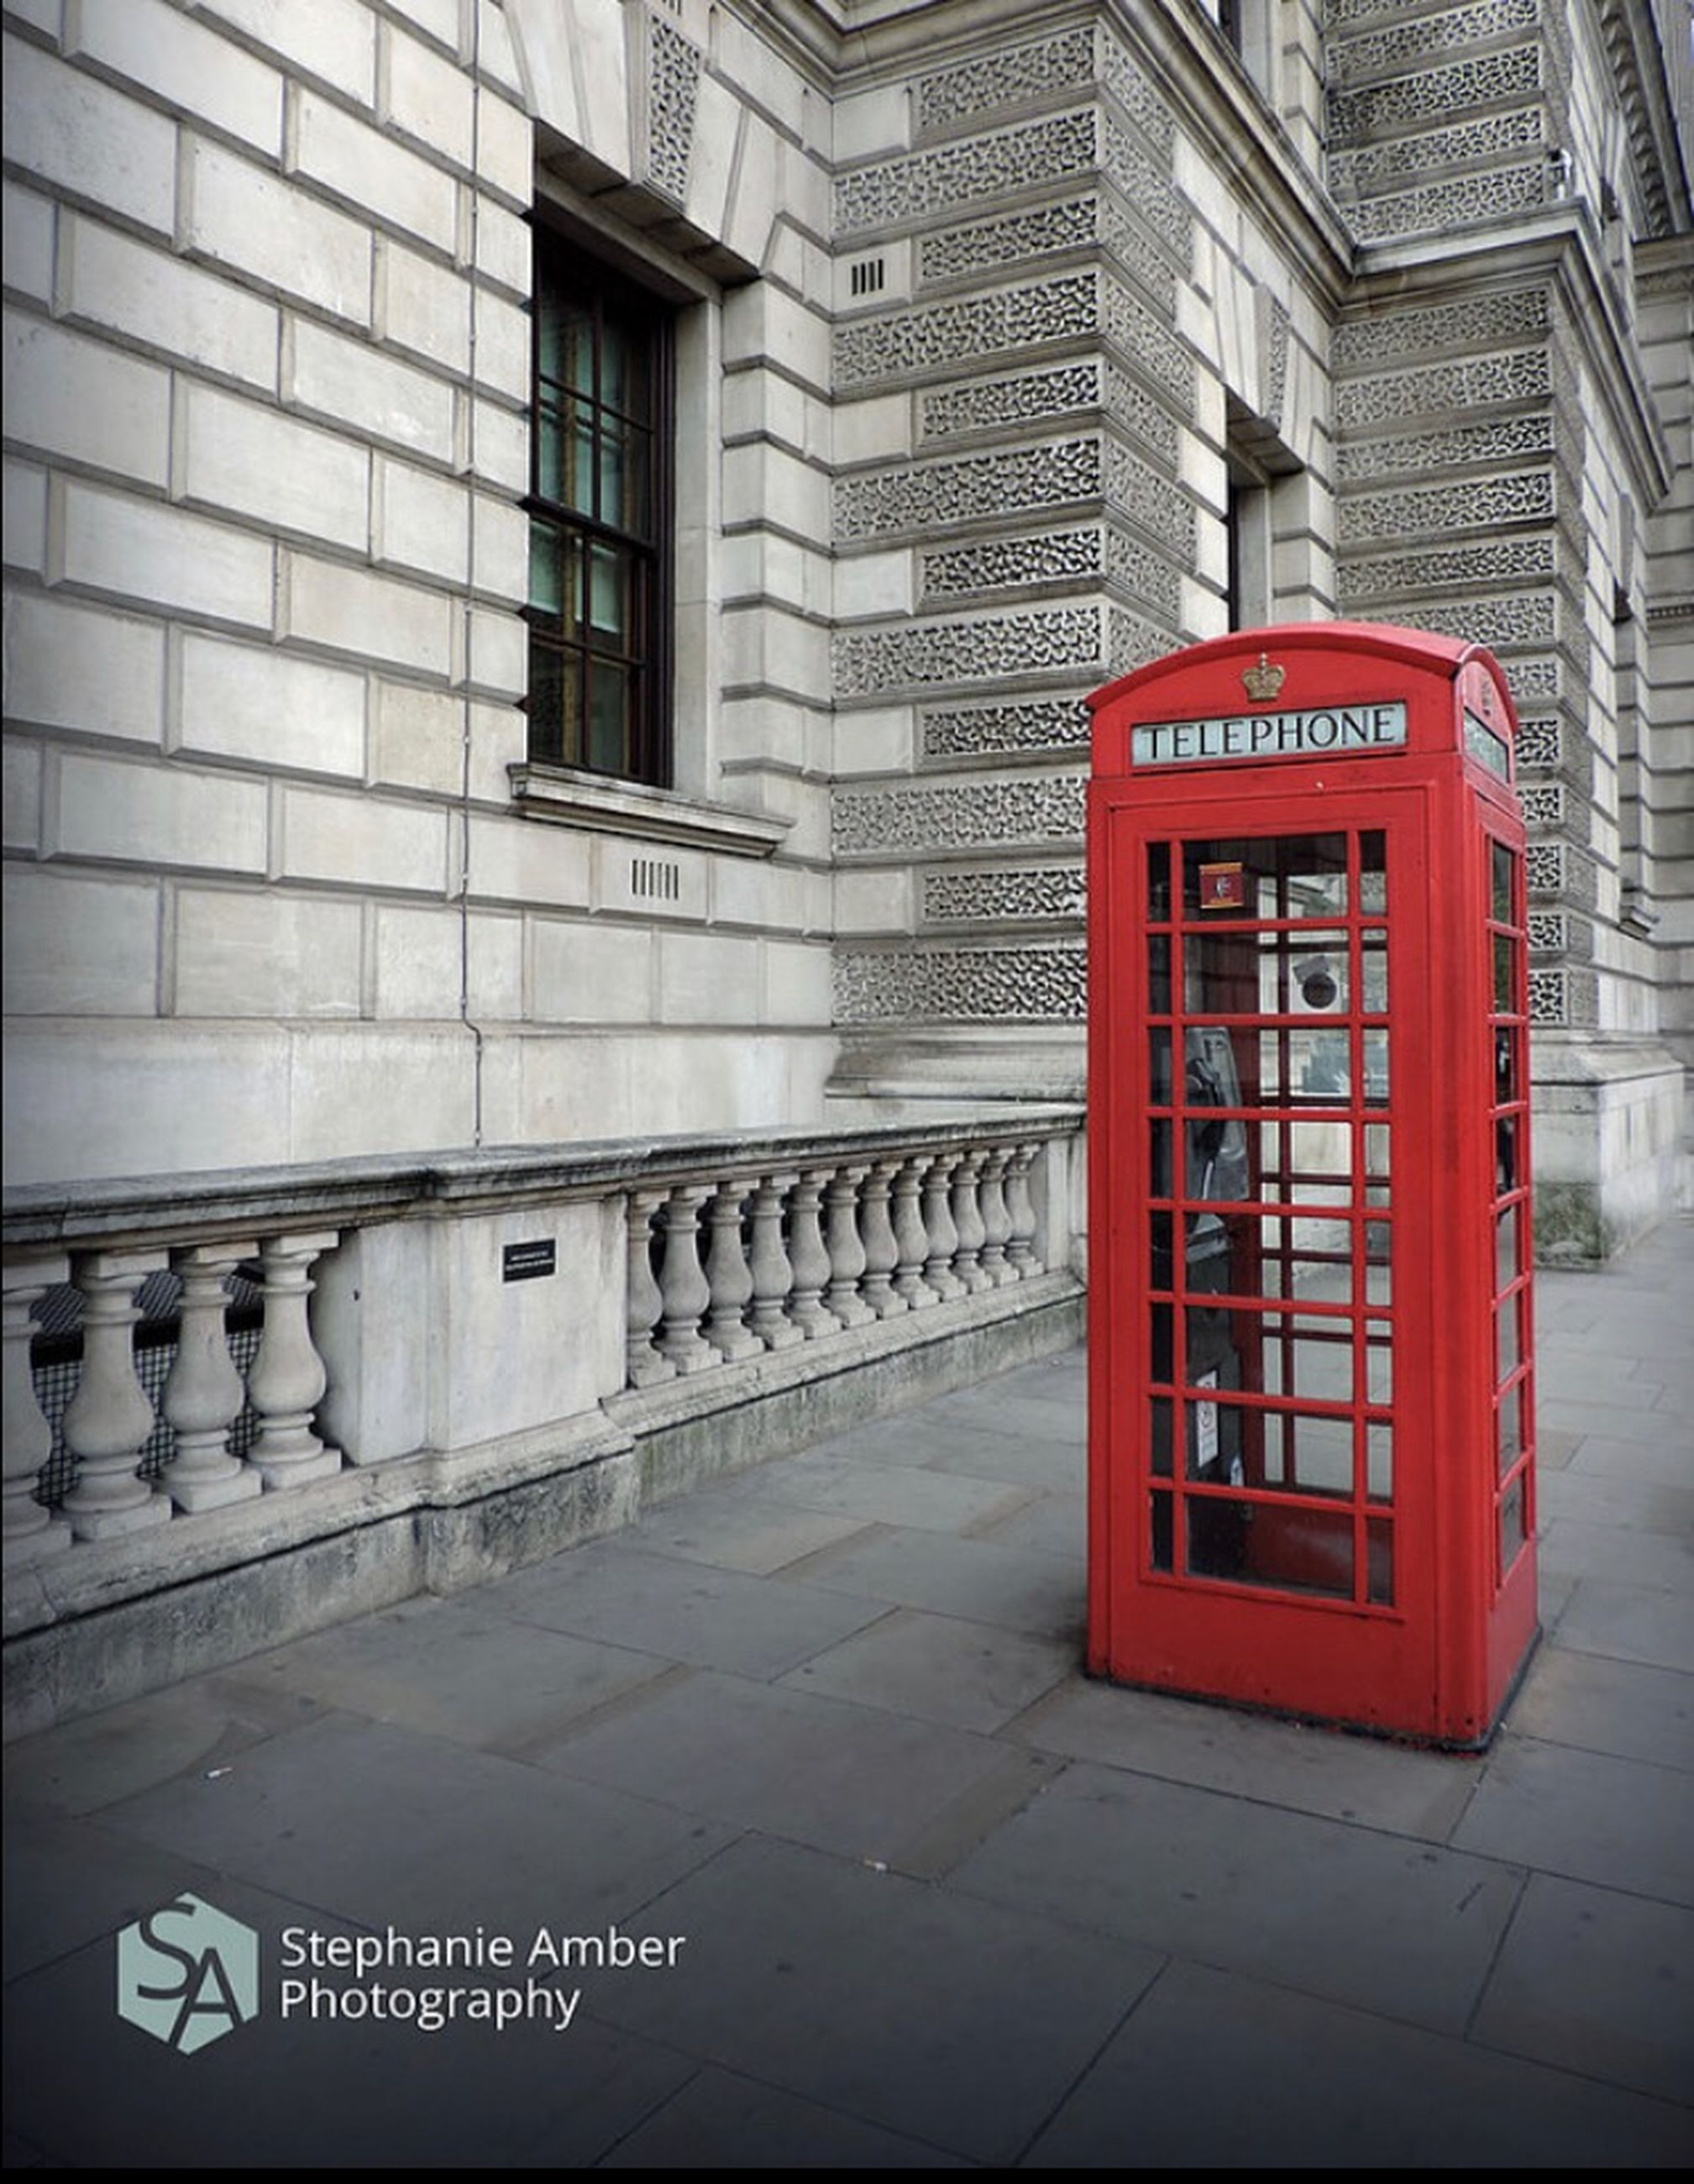 communication, telephone, telephone booth, architecture, built structure, text, building exterior, western script, red, technology, city, connection, day, pay phone, sidewalk, street, no people, footpath, outdoors, transportation